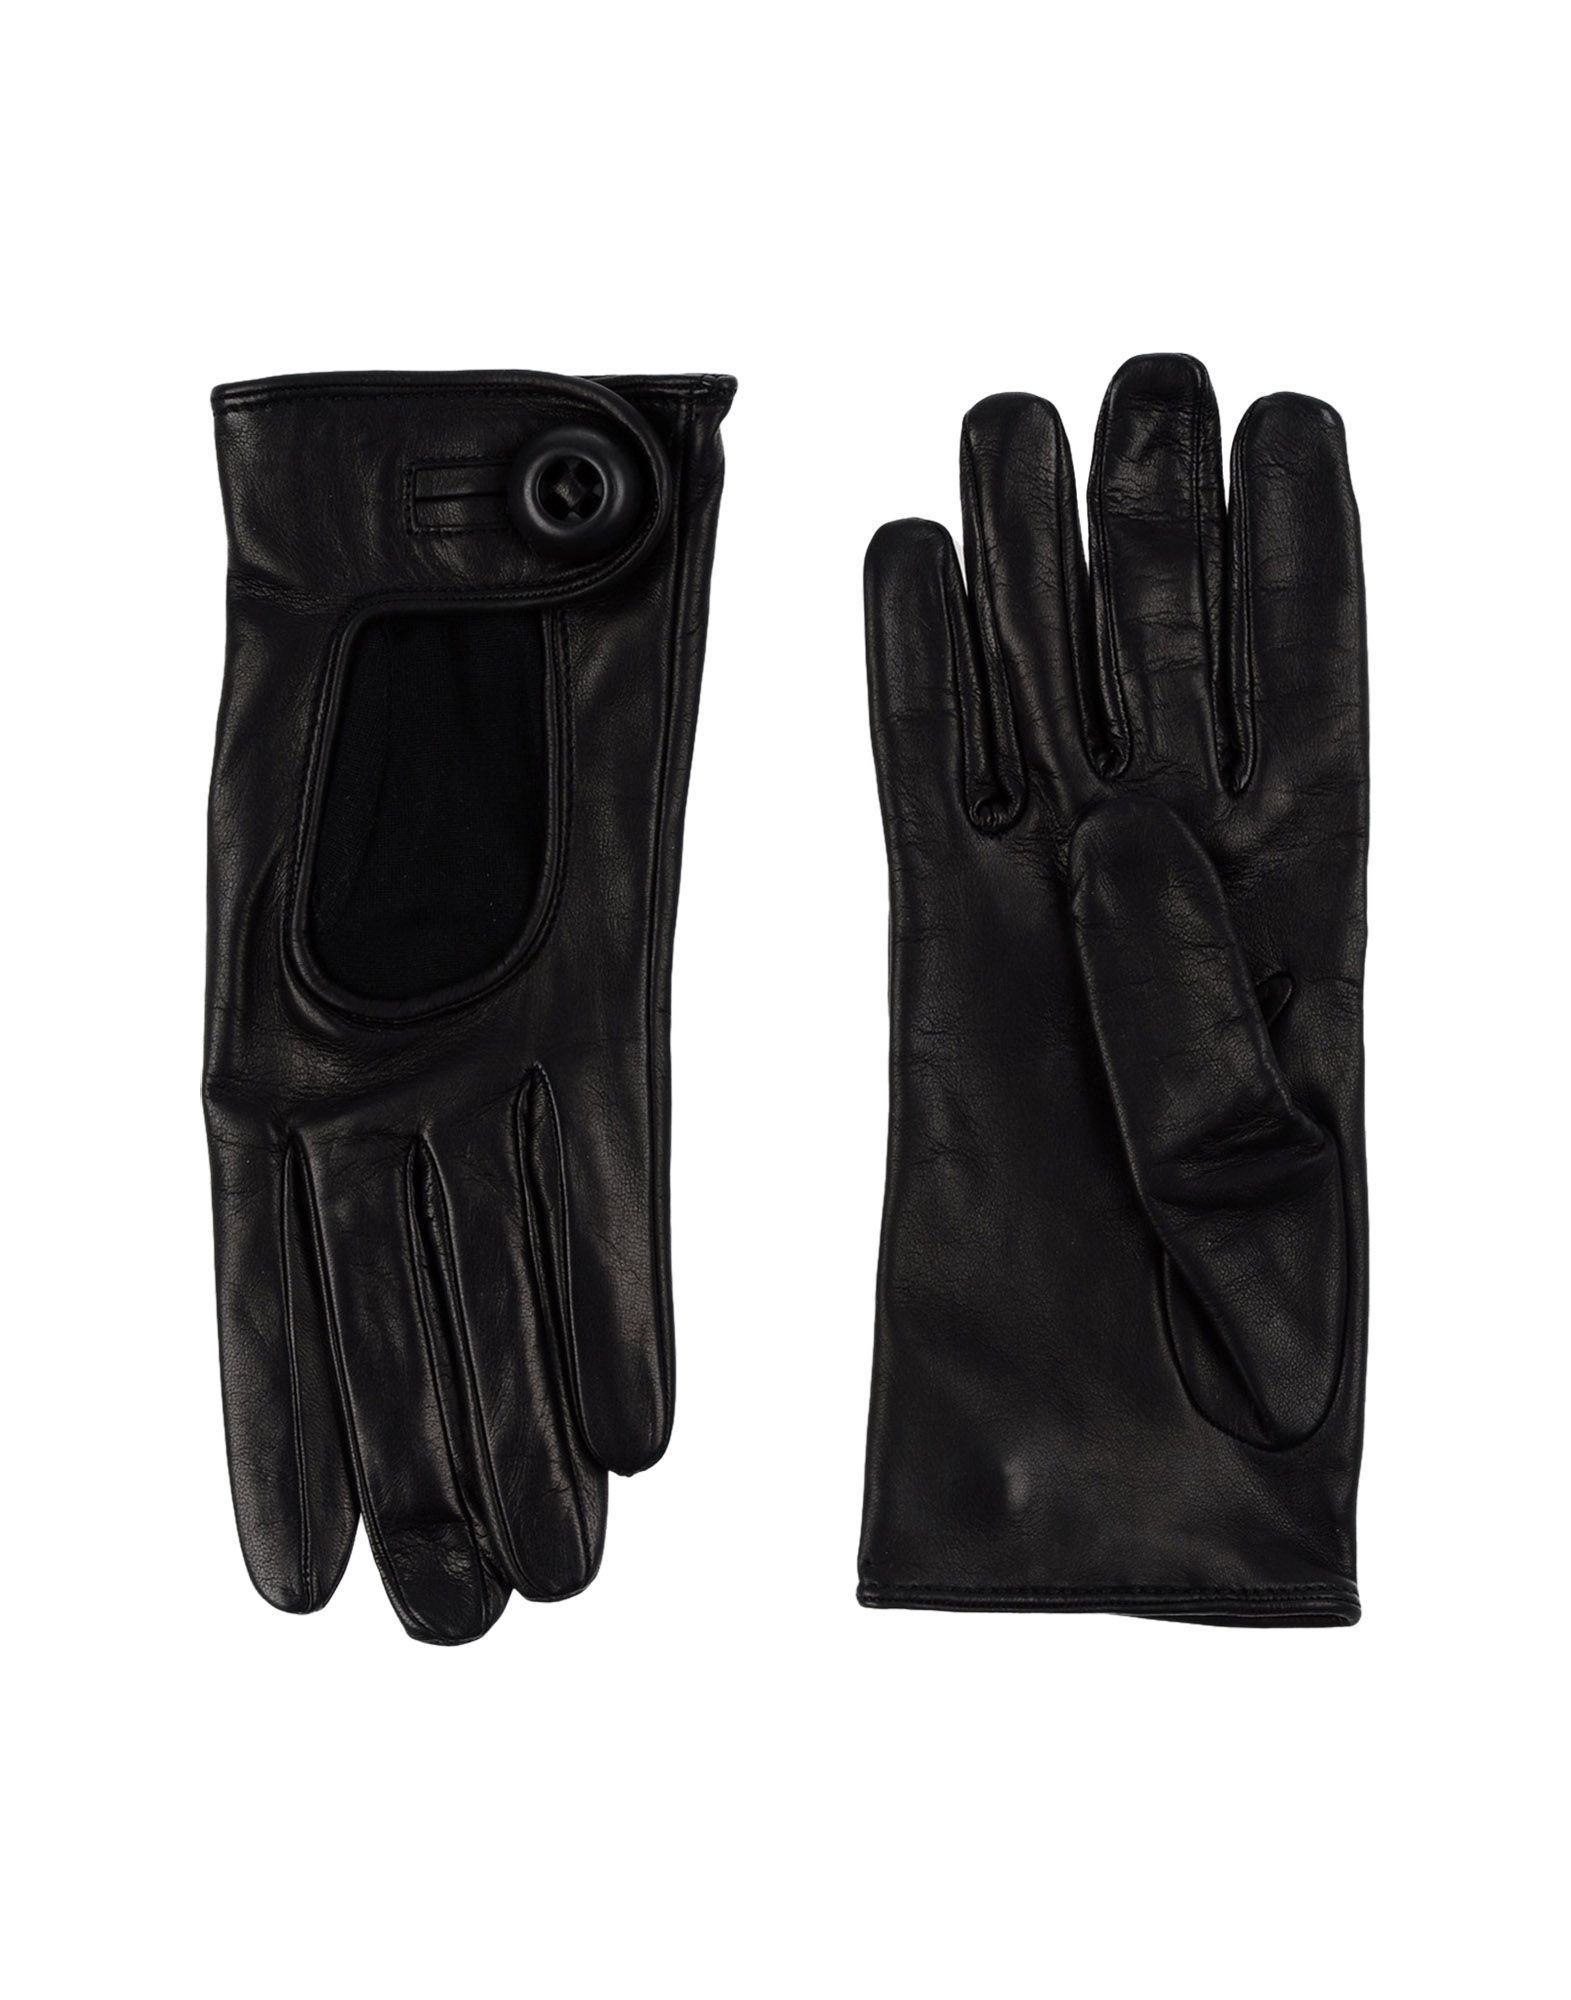 Prada mens leather gloves - Prada Women Spring Summer And Fall Winter Collections Gloves On Sale Online On Yoox